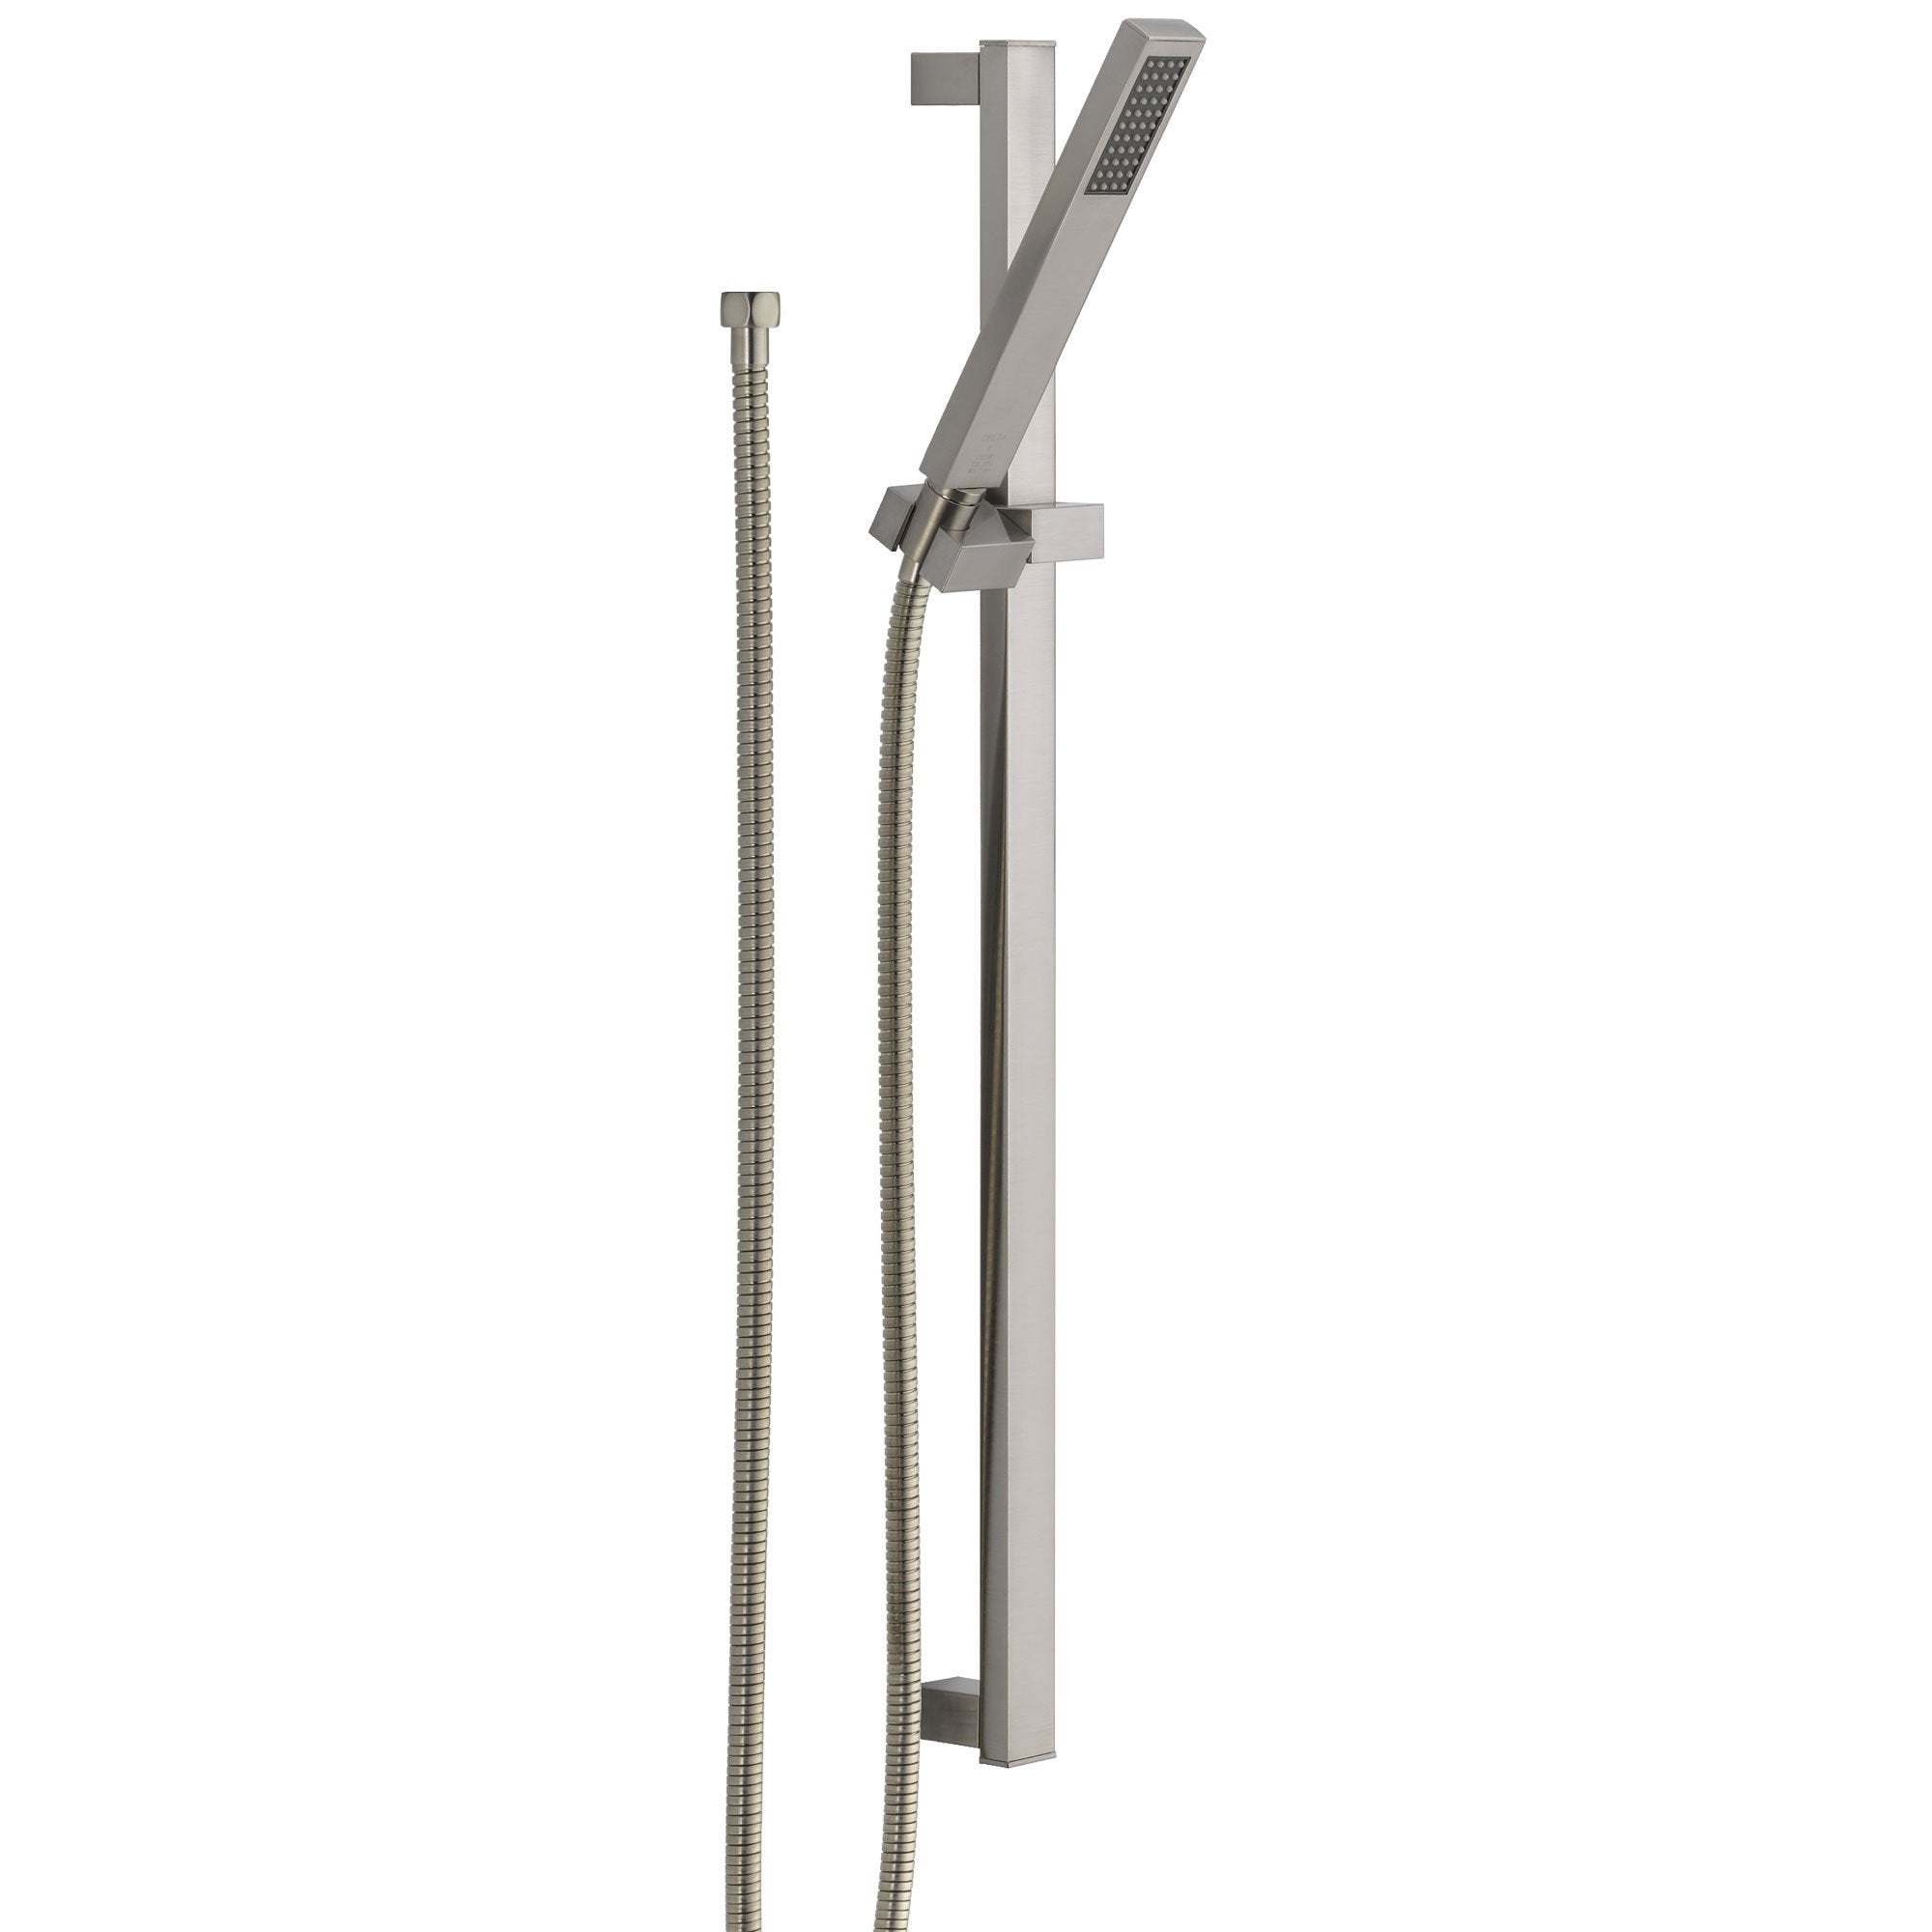 Delta Vero Modern Stainless Steel Finish Handheld Shower with Slide Bar 521881